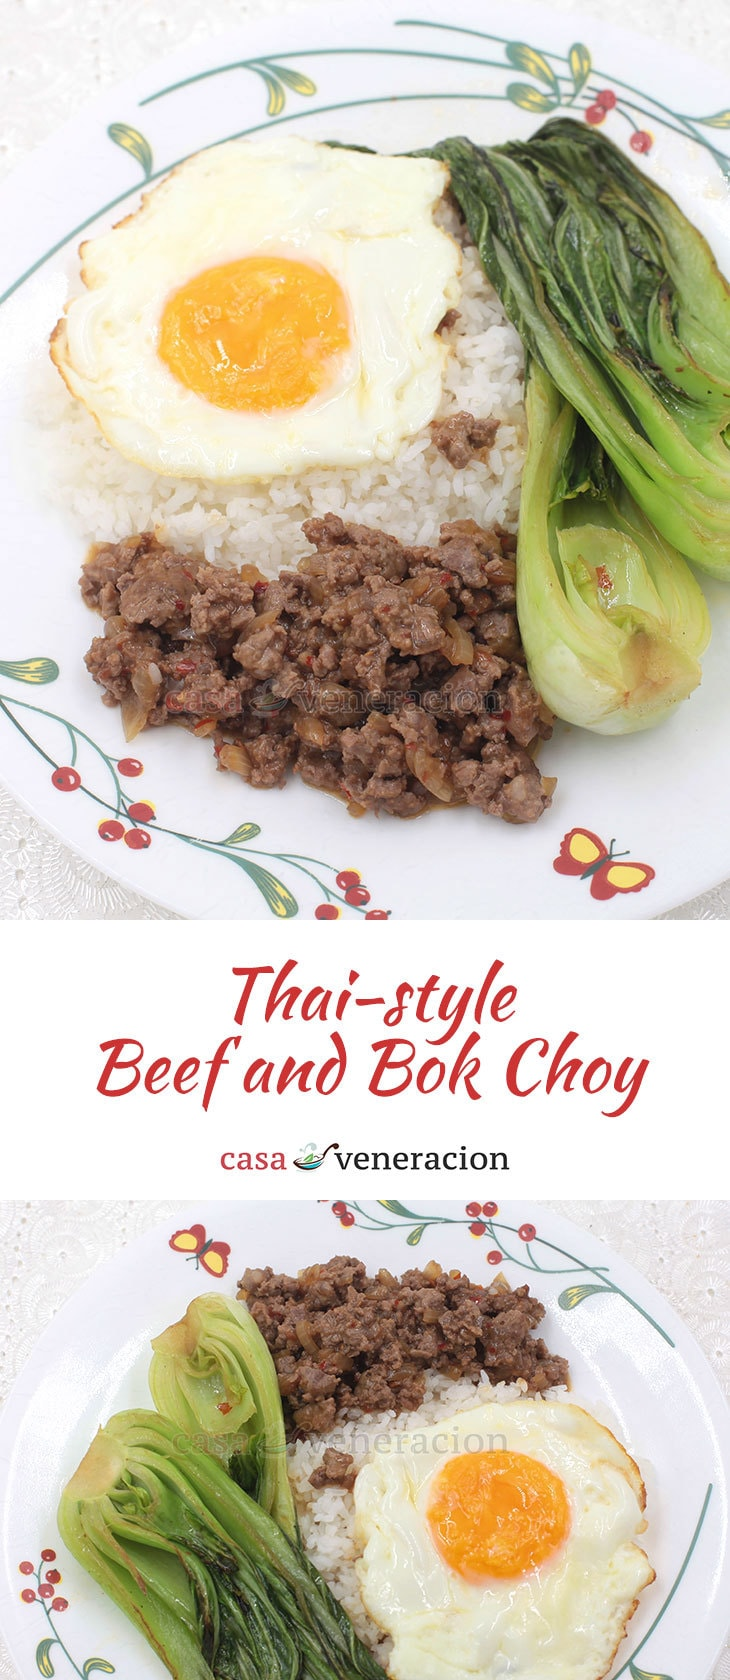 A tasty and filling breakfast dish, this Thai beef, bok choy and egg platter is something you can enjoy any time of the day. Prep time is 10 minutes. Cook time is 10 minutes. #thai #breakfast